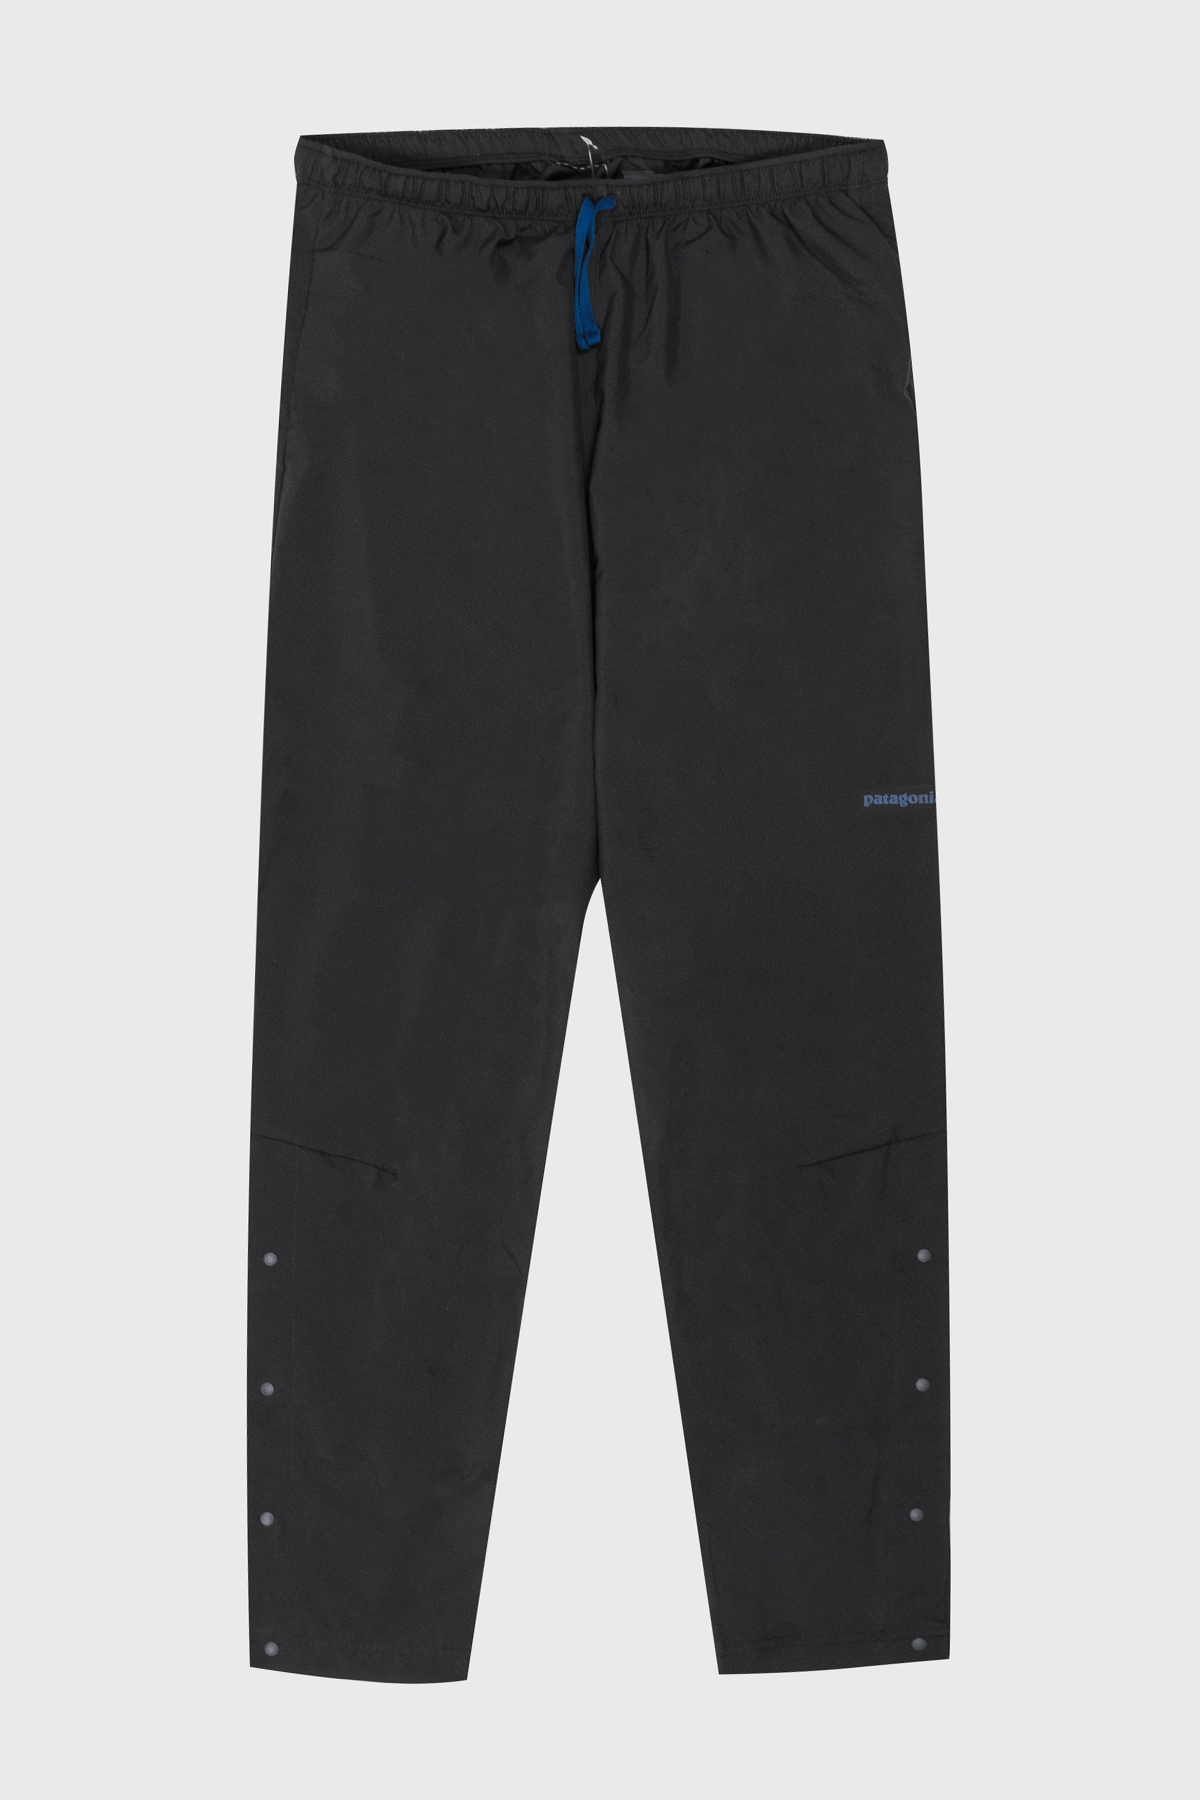 patagonia - PANTS MEN STRIDER - SMOLDER BLUE